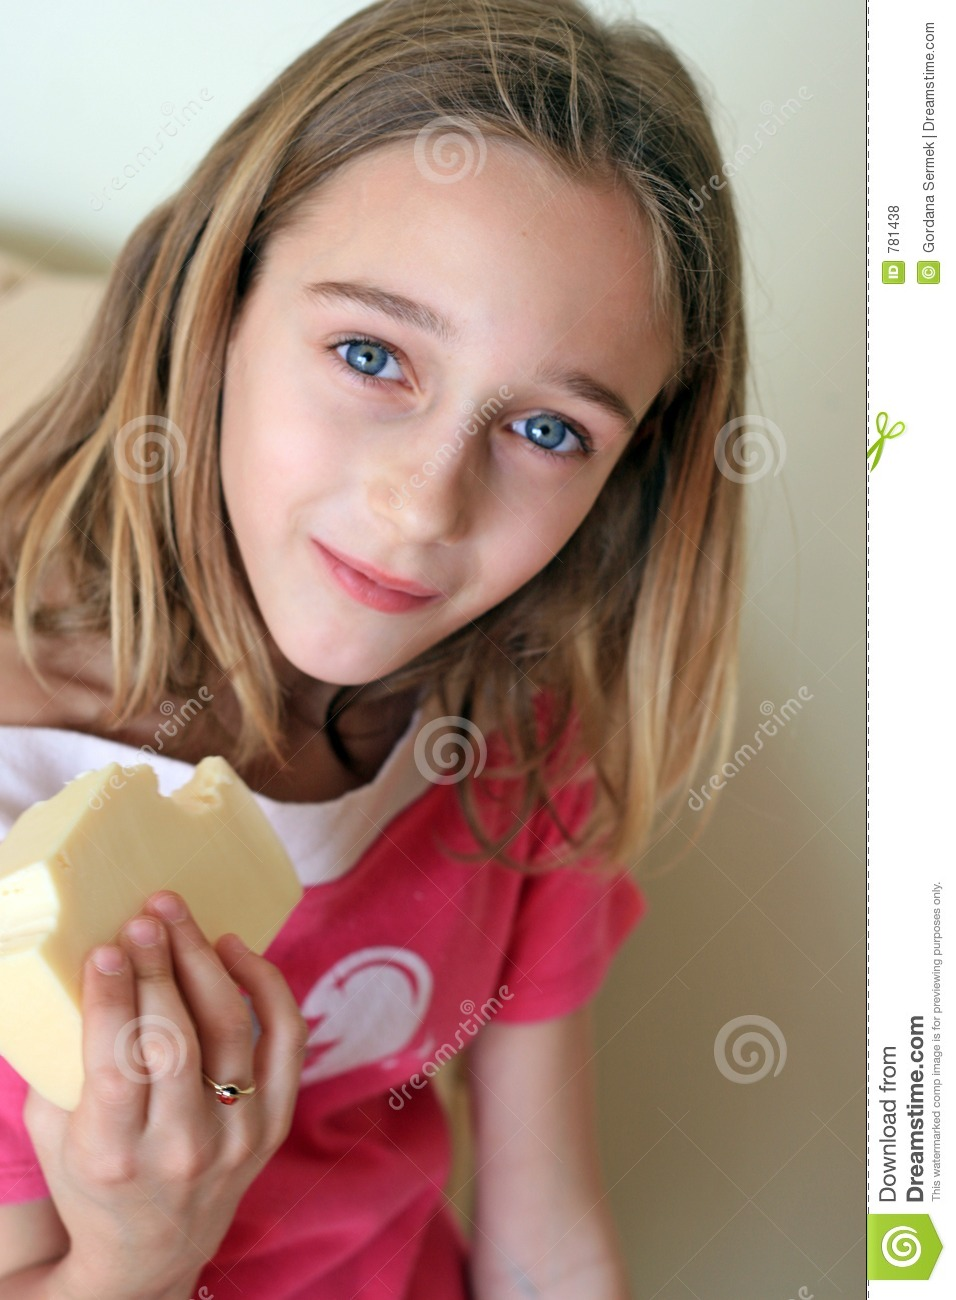 Girl holding cheese